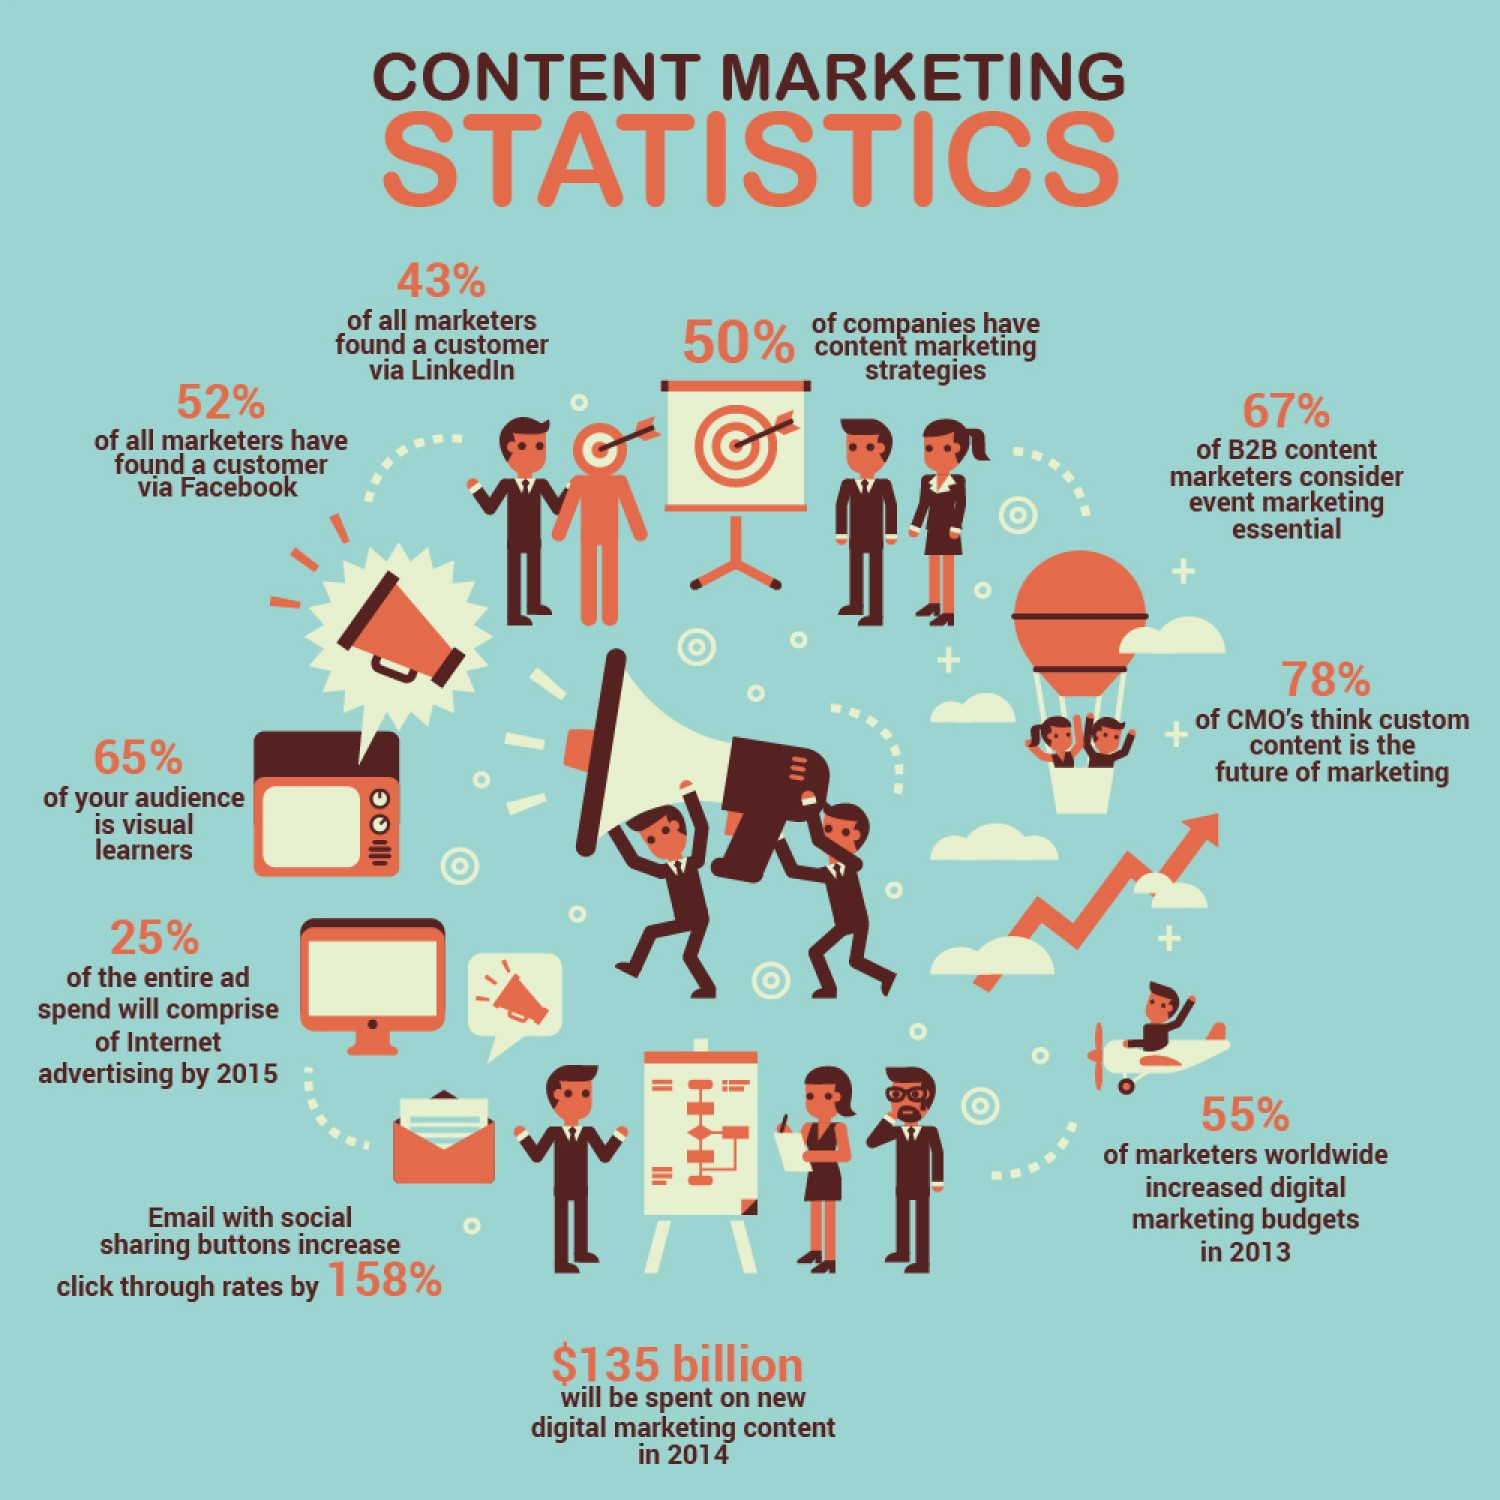 Content-marketing-statistics-.jpg